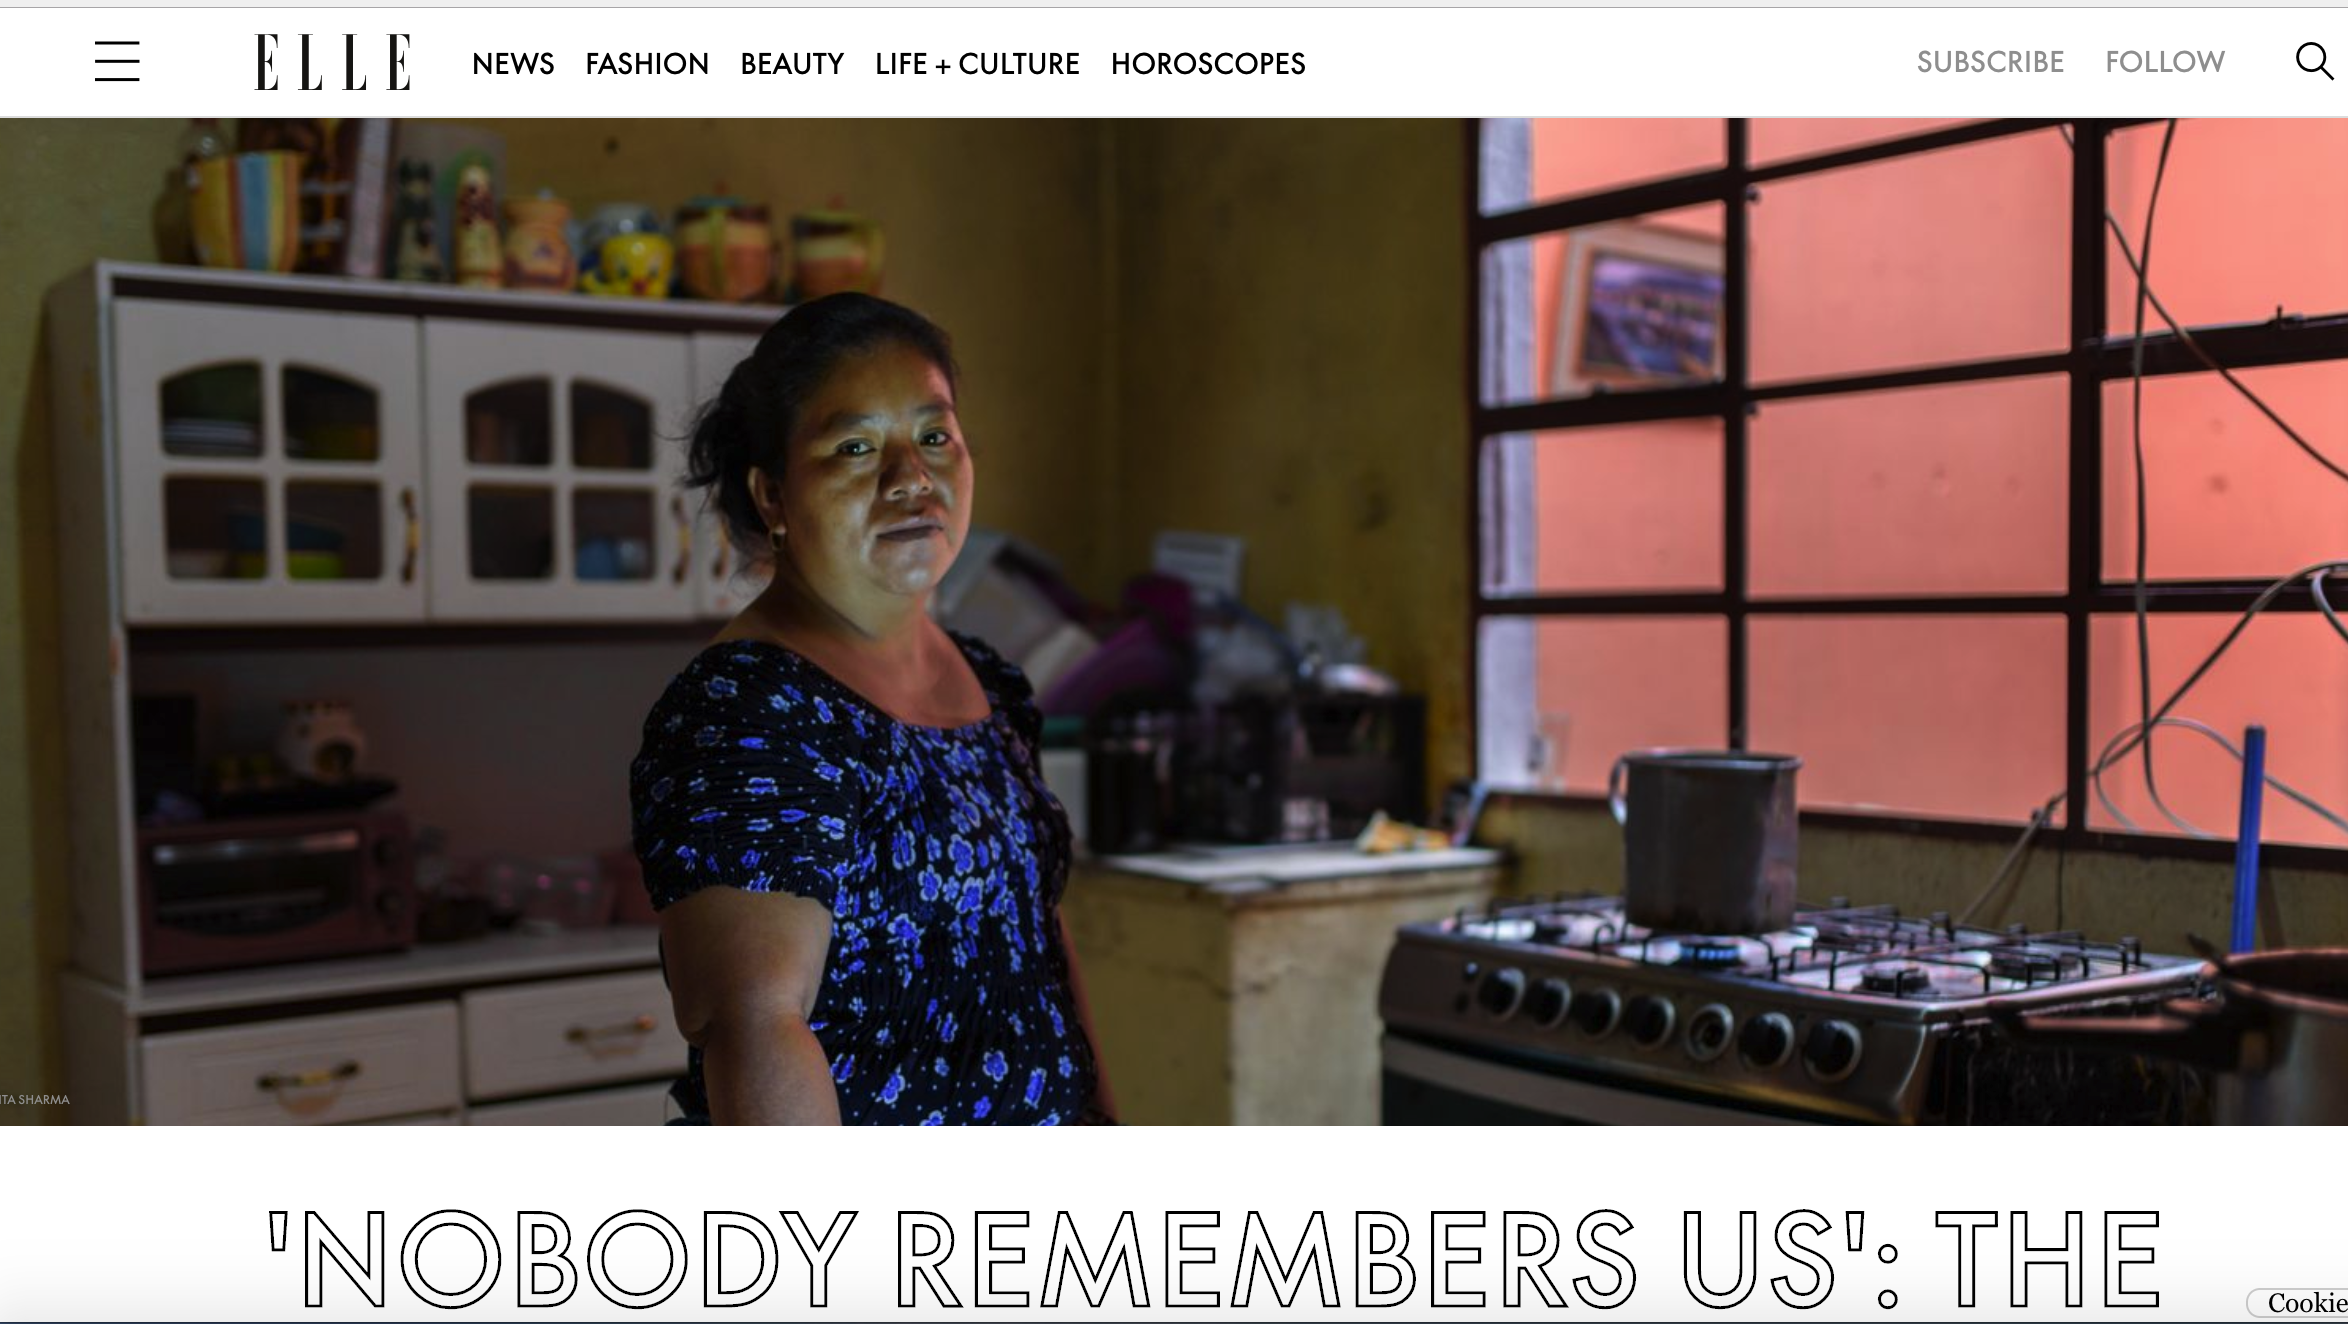 https://www.elle.com/uk/life-and-culture/a21853791/widows-murder-in-guatemala/